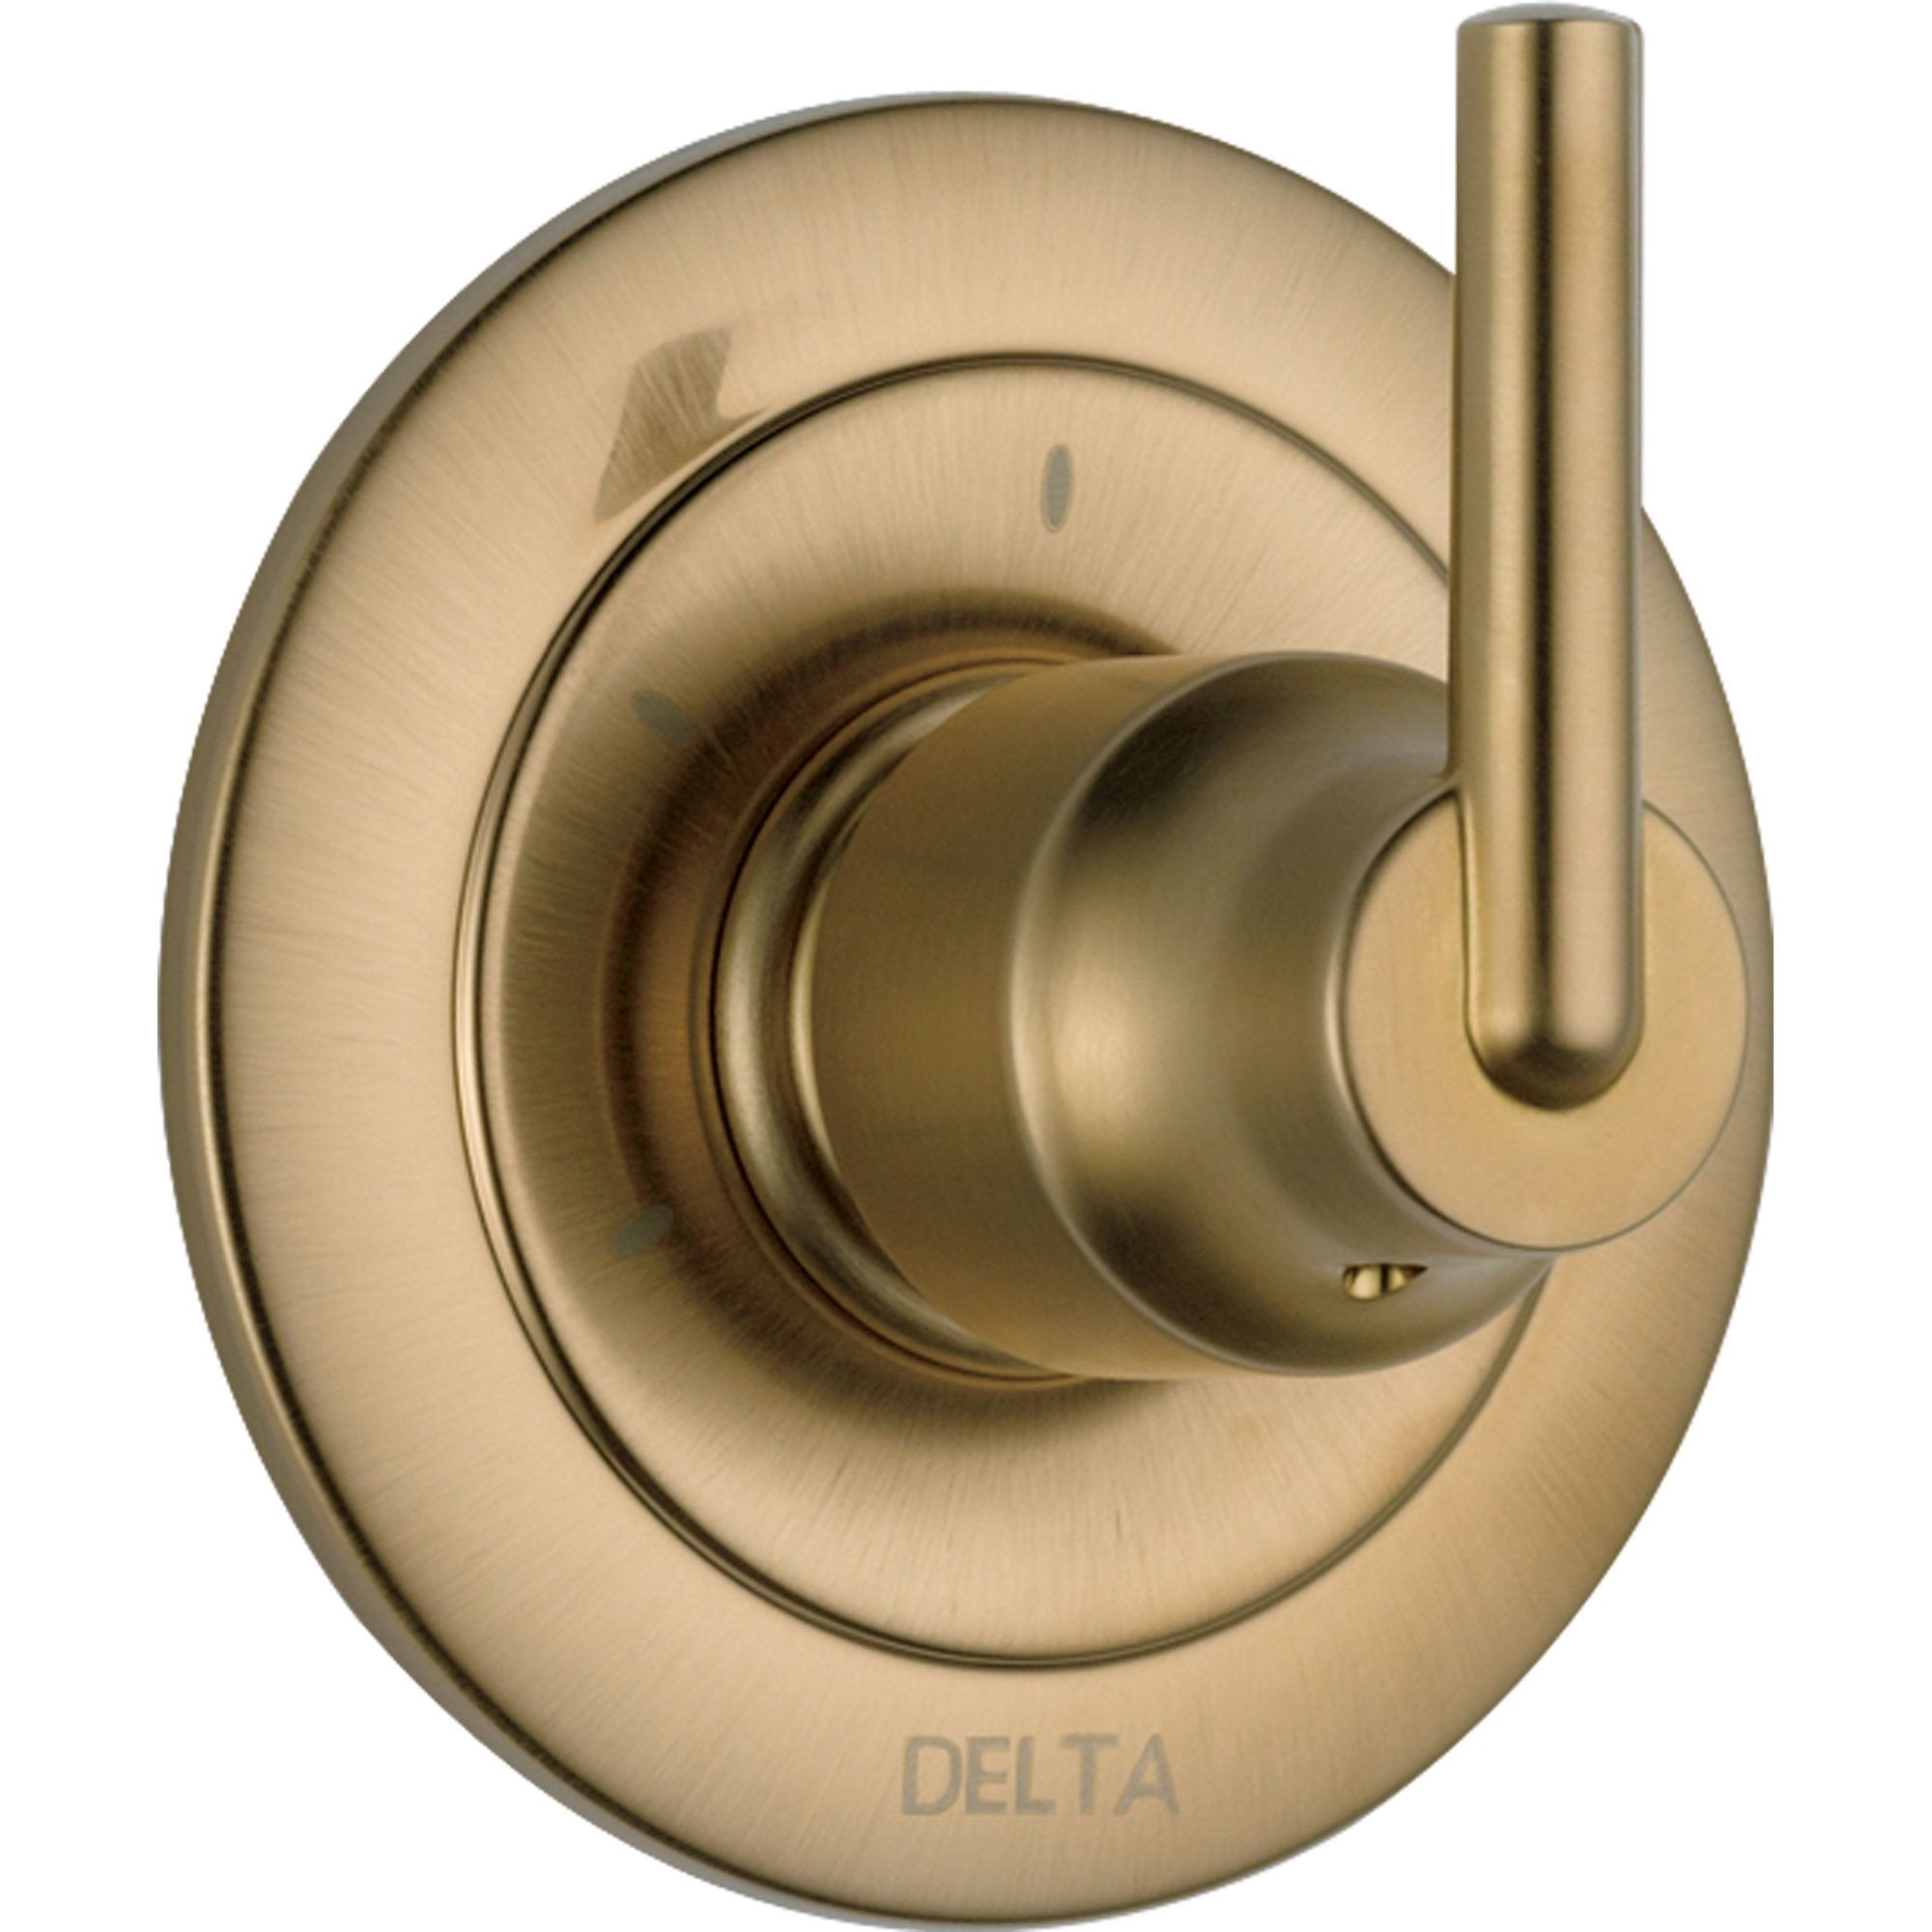 Delta Trinsic 3-Setting Modern Champagne Bronze Shower Diverter Trim Kit 590196